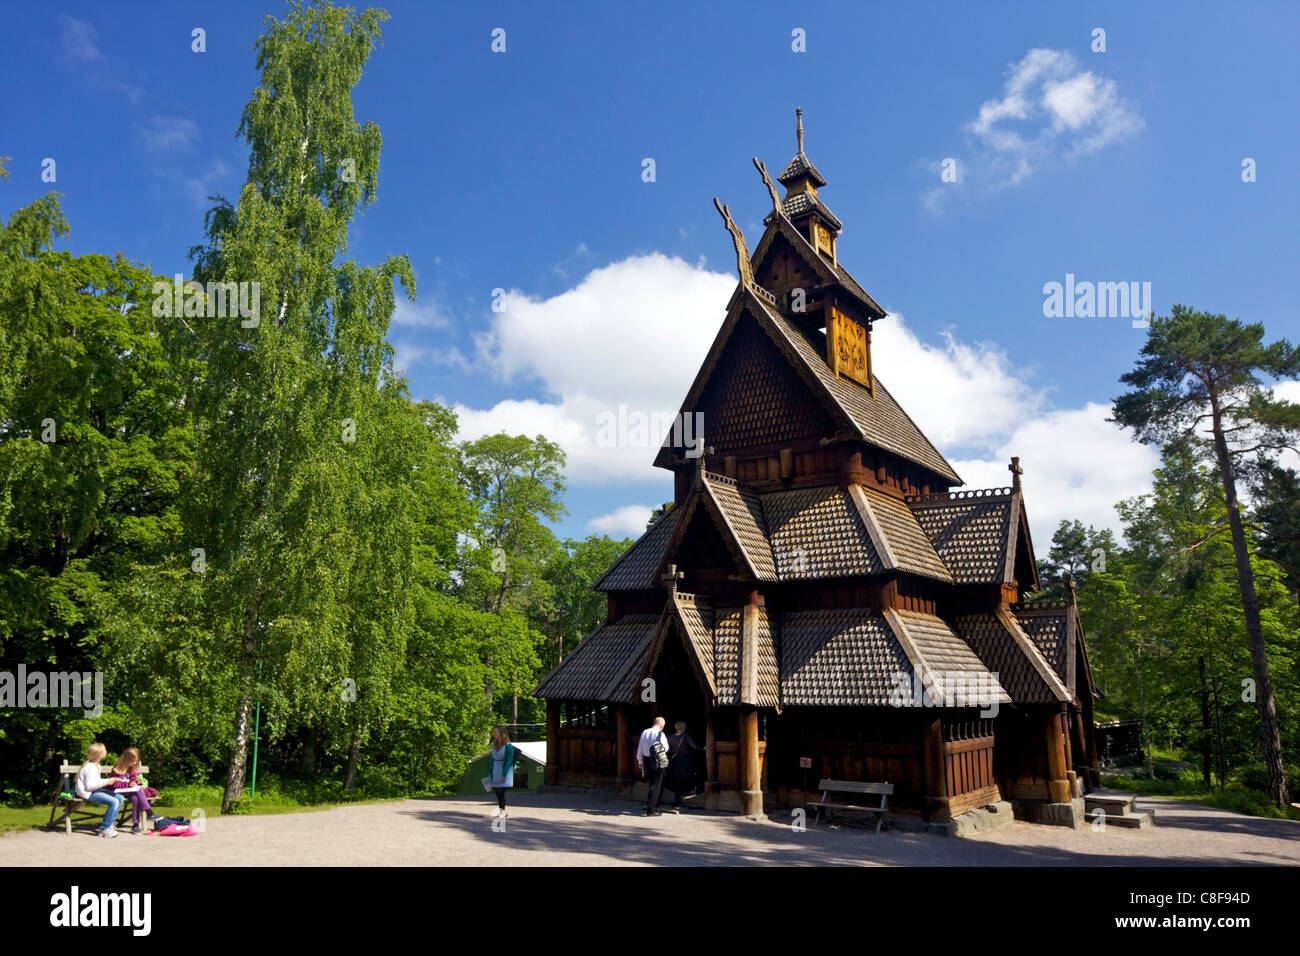 Gol 13th century Stavkirke (Wooden Stave Church, Norsk Folkemuseum (Folk Museum, Bygdoy, Oslo, Norway, Scandinavia - Stock Image